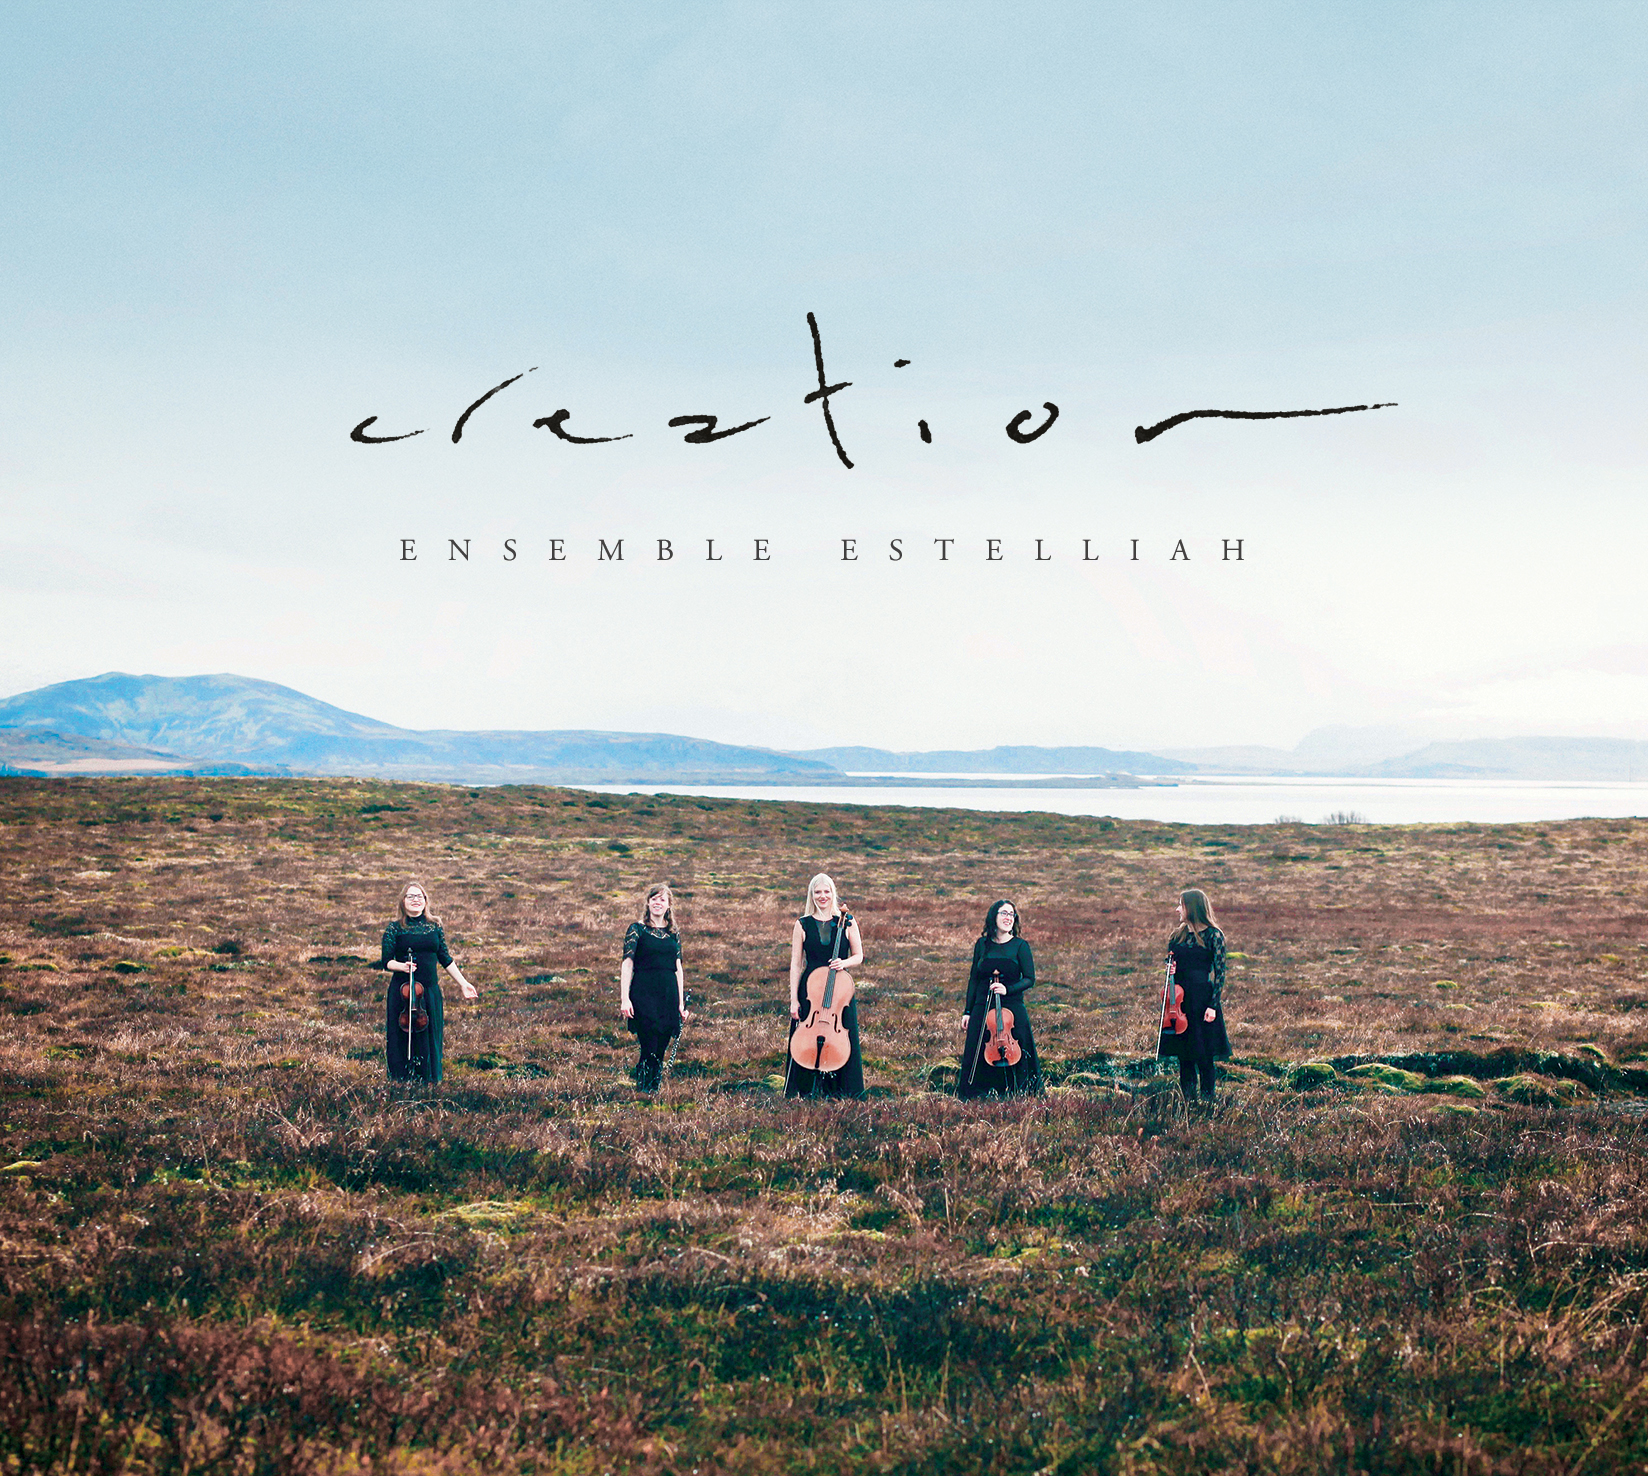 Spontaneous, instrumental improvisations inspired by Icelandic landscape.